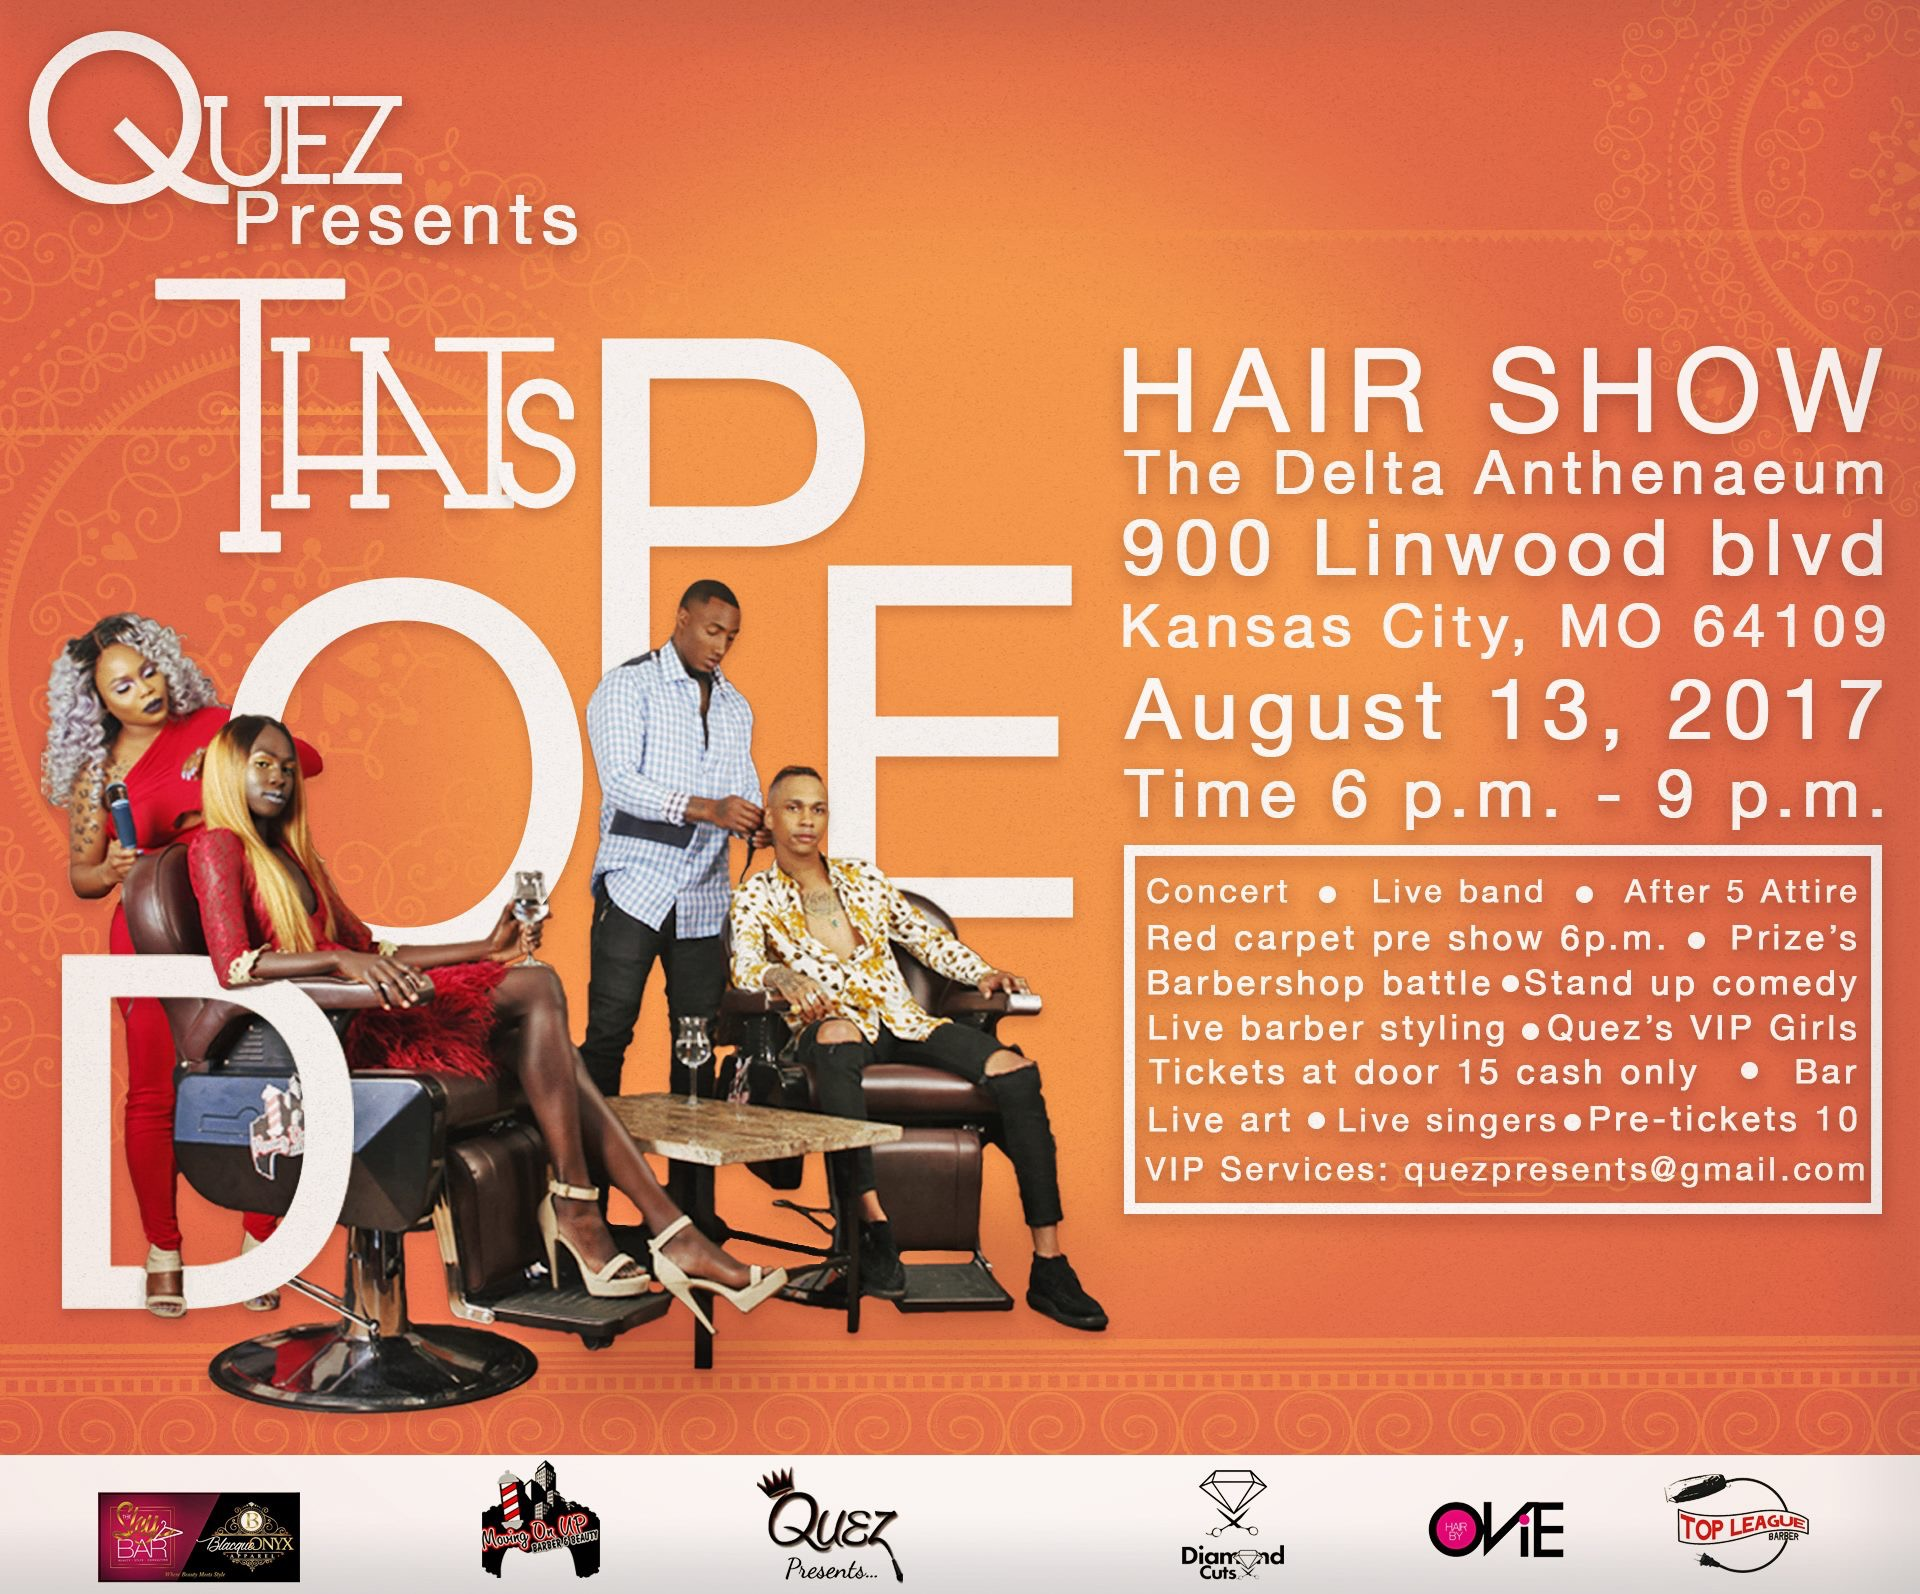 Quez Presents Hair Show with Hair by Ovie